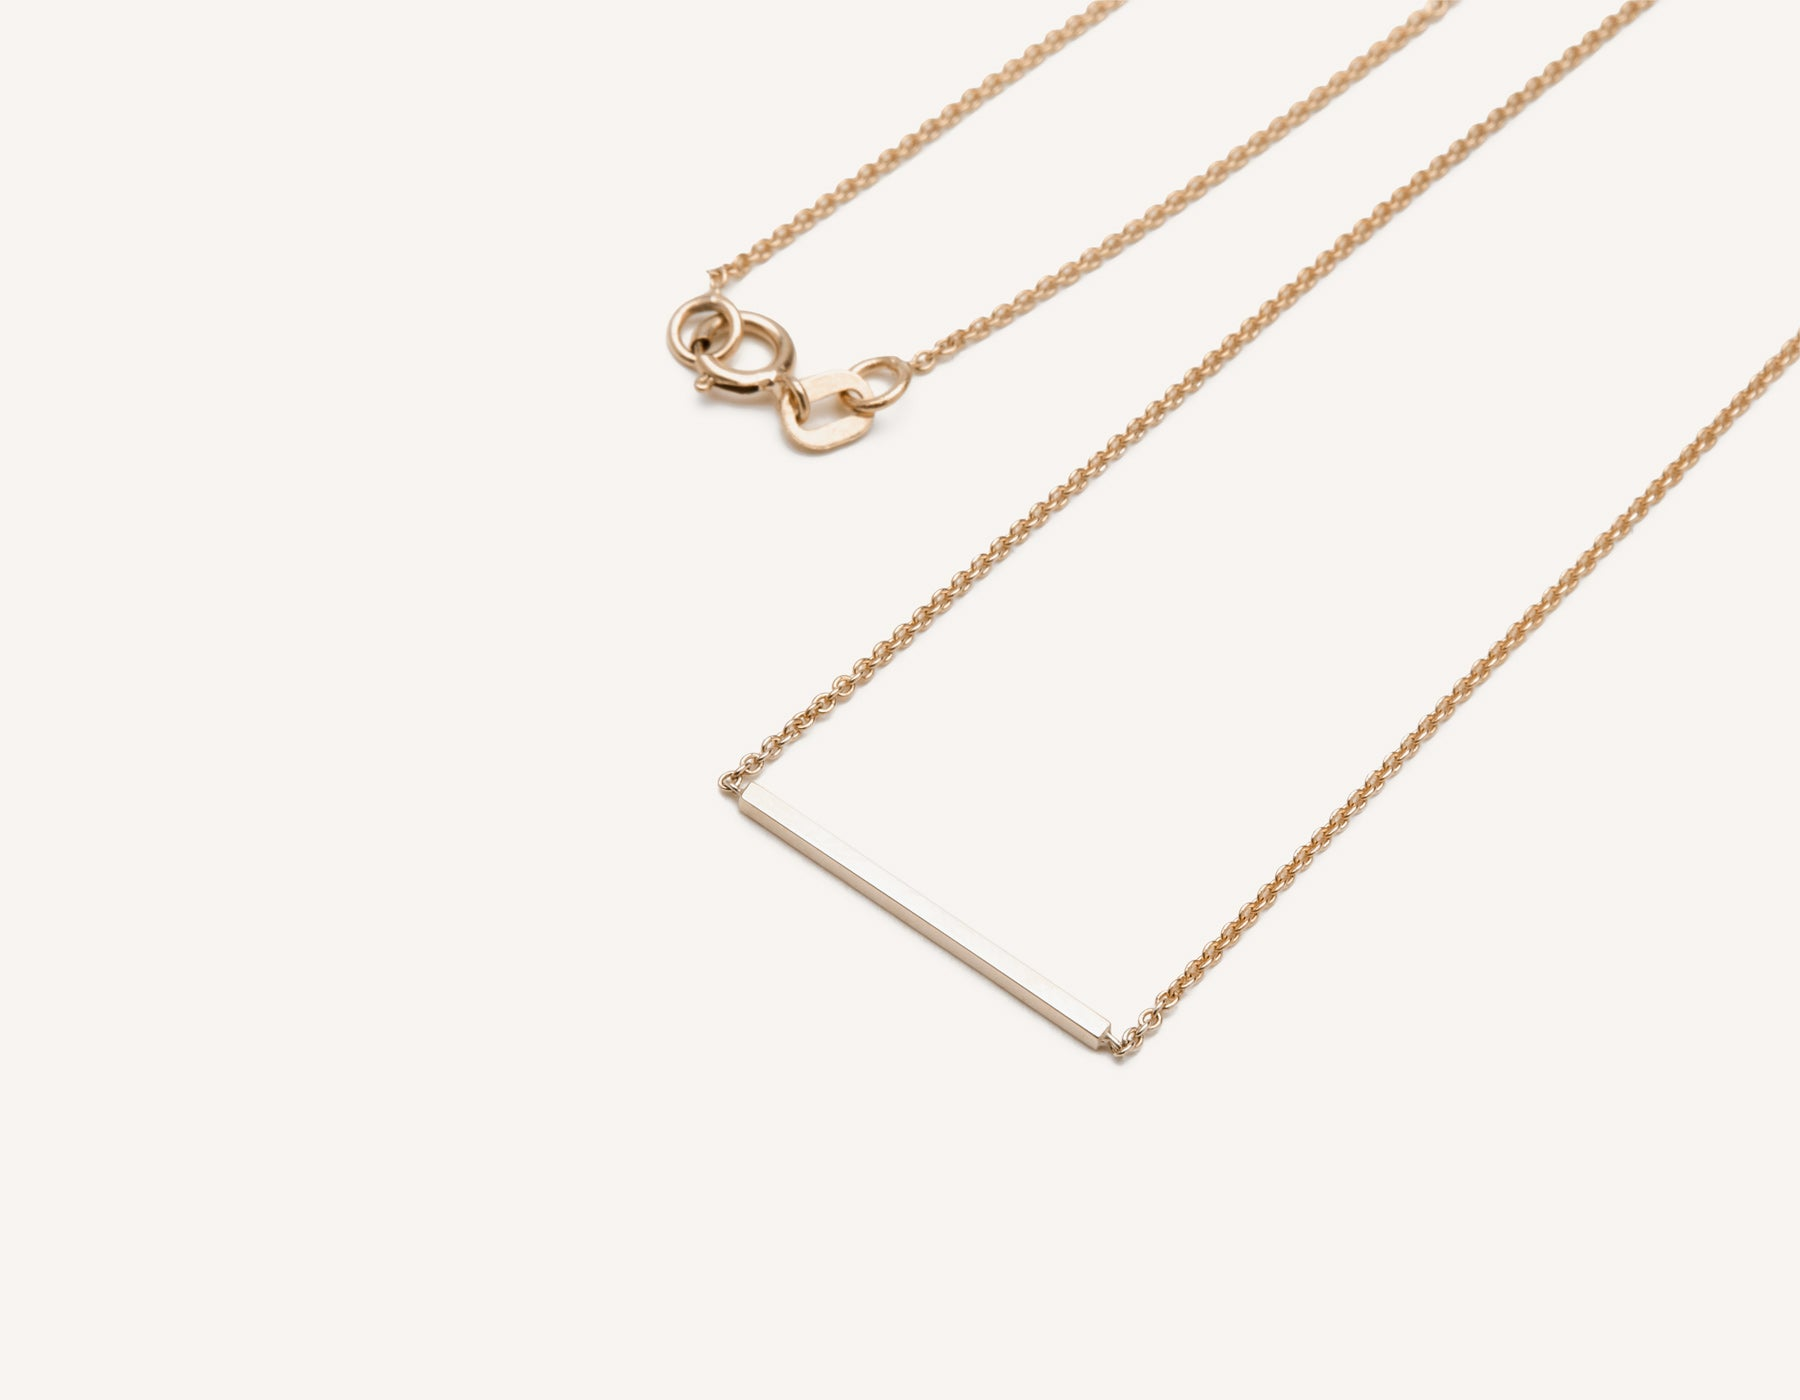 Line Necklace 14k solid gold small bar delicate chain spring ring clasp Vrai & Oro, 14K Rose Gold